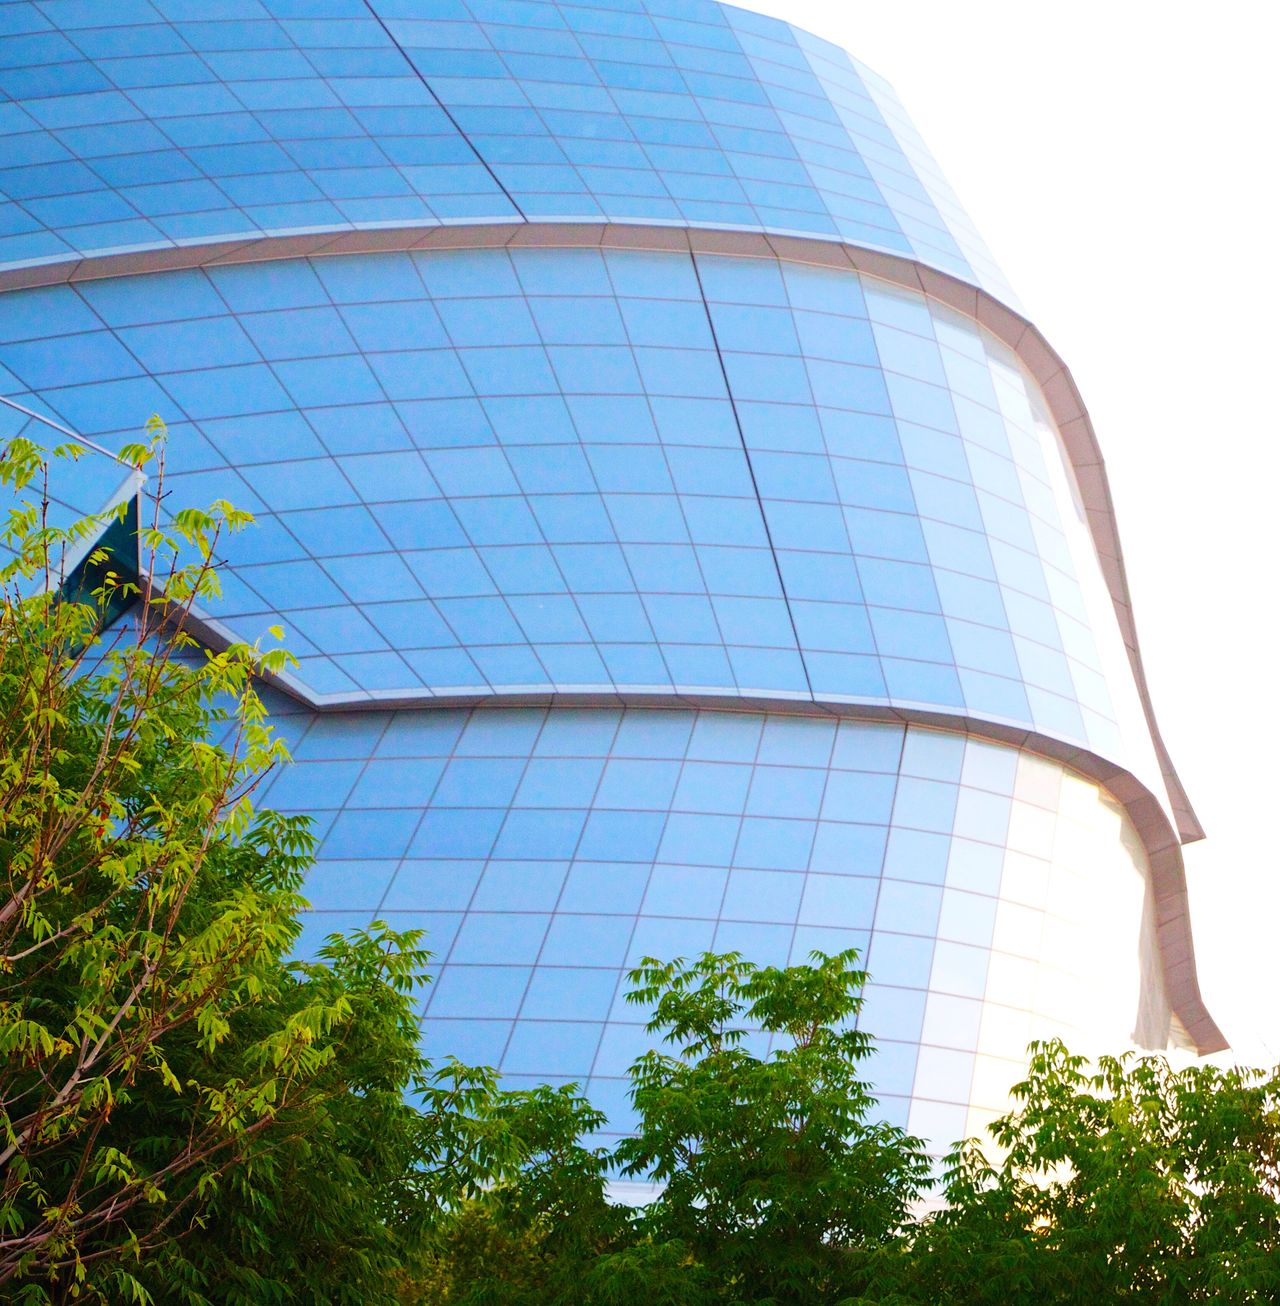 Modern Urban Scene Urban Reflections Glass Building Architecture Low Angle View Modern Blue Sky Building Exterior Built Structure Tree City Outdoors Clear Sky Day No People Futuristic Skyscraper